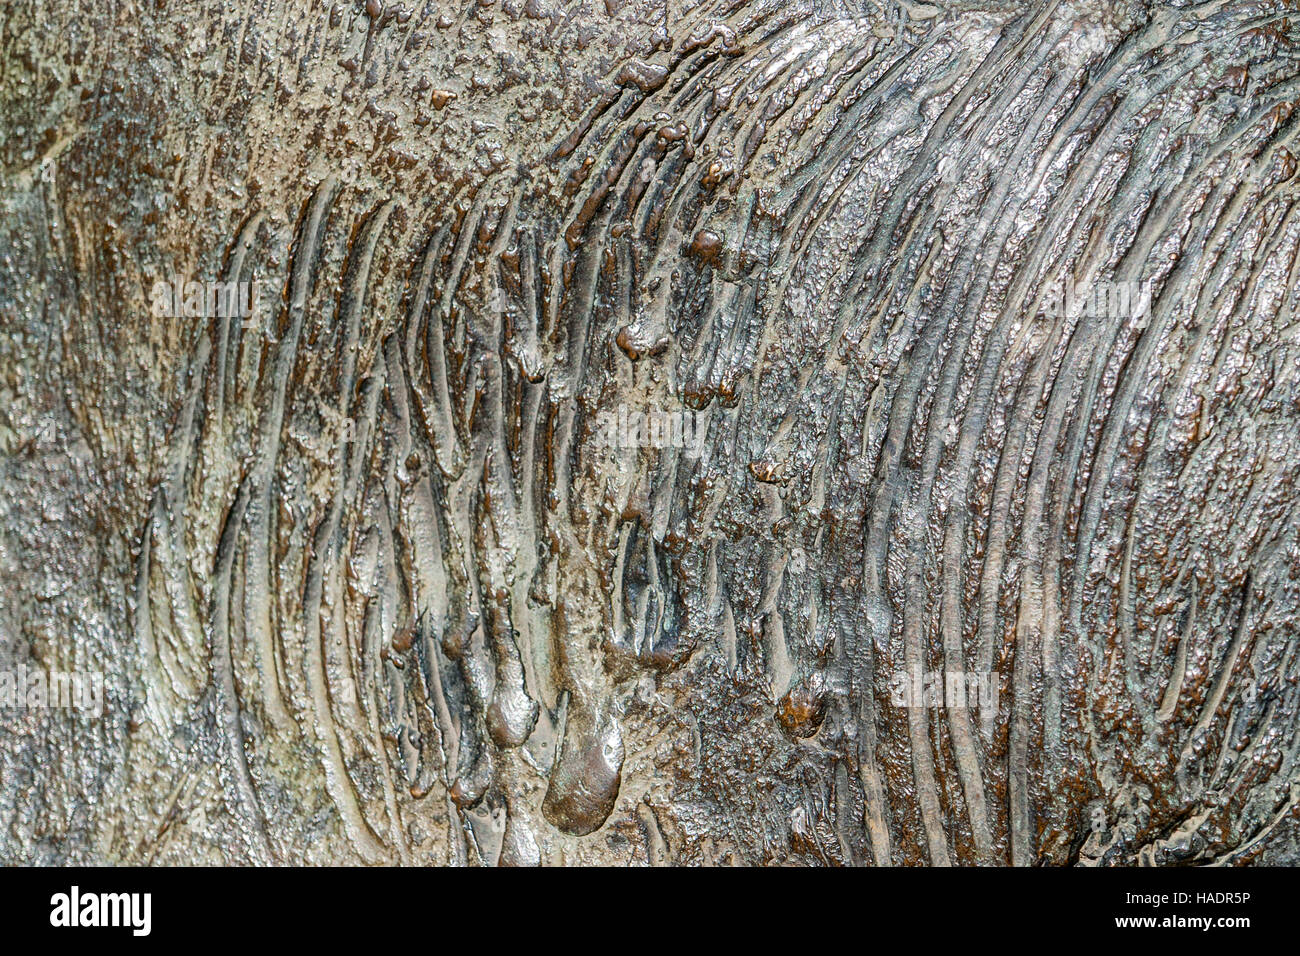 full frame abstract bronze surface detail - Stock Image